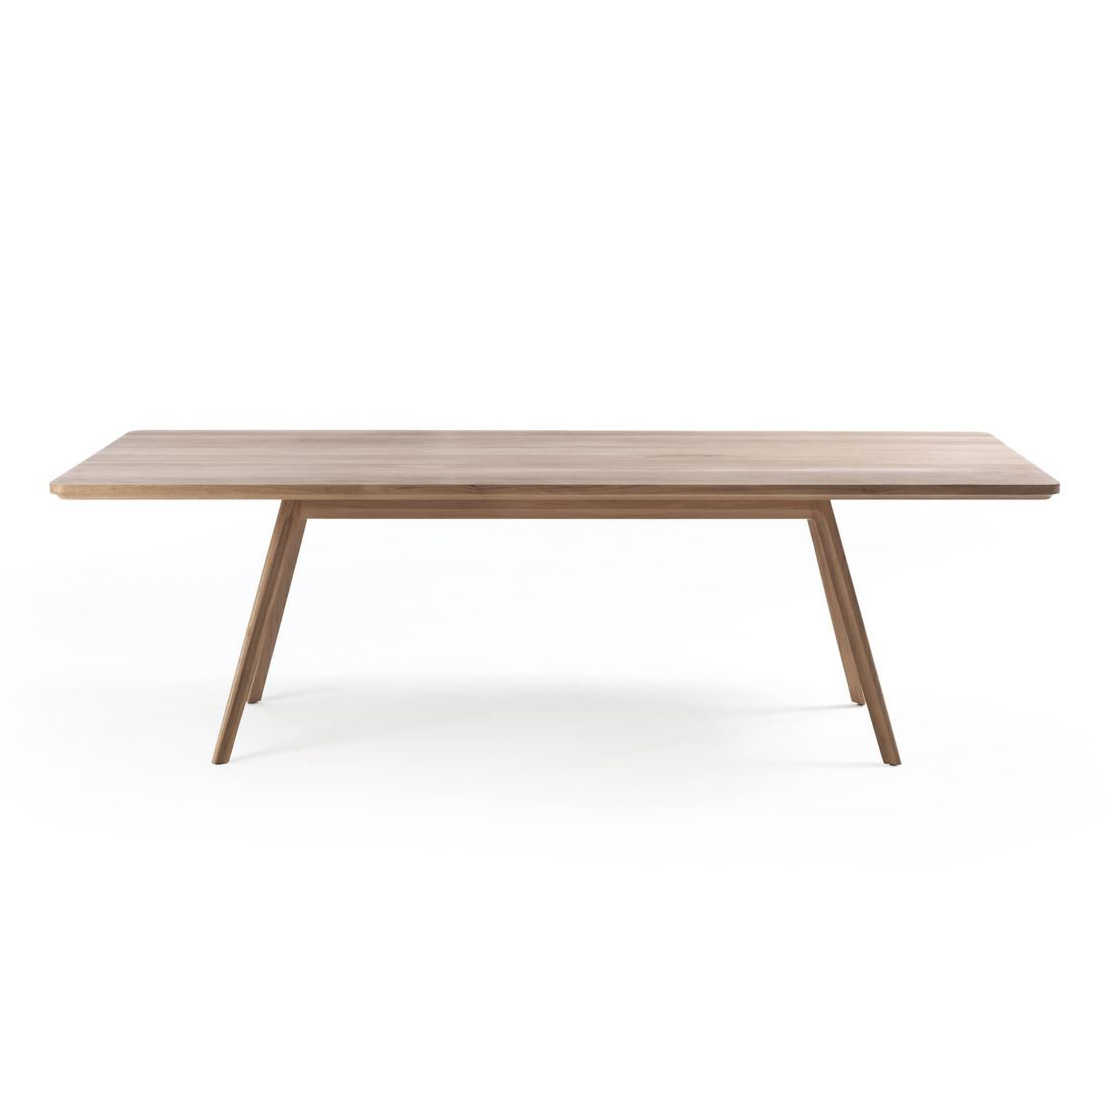 Concept 2 dining table from Riva 1920